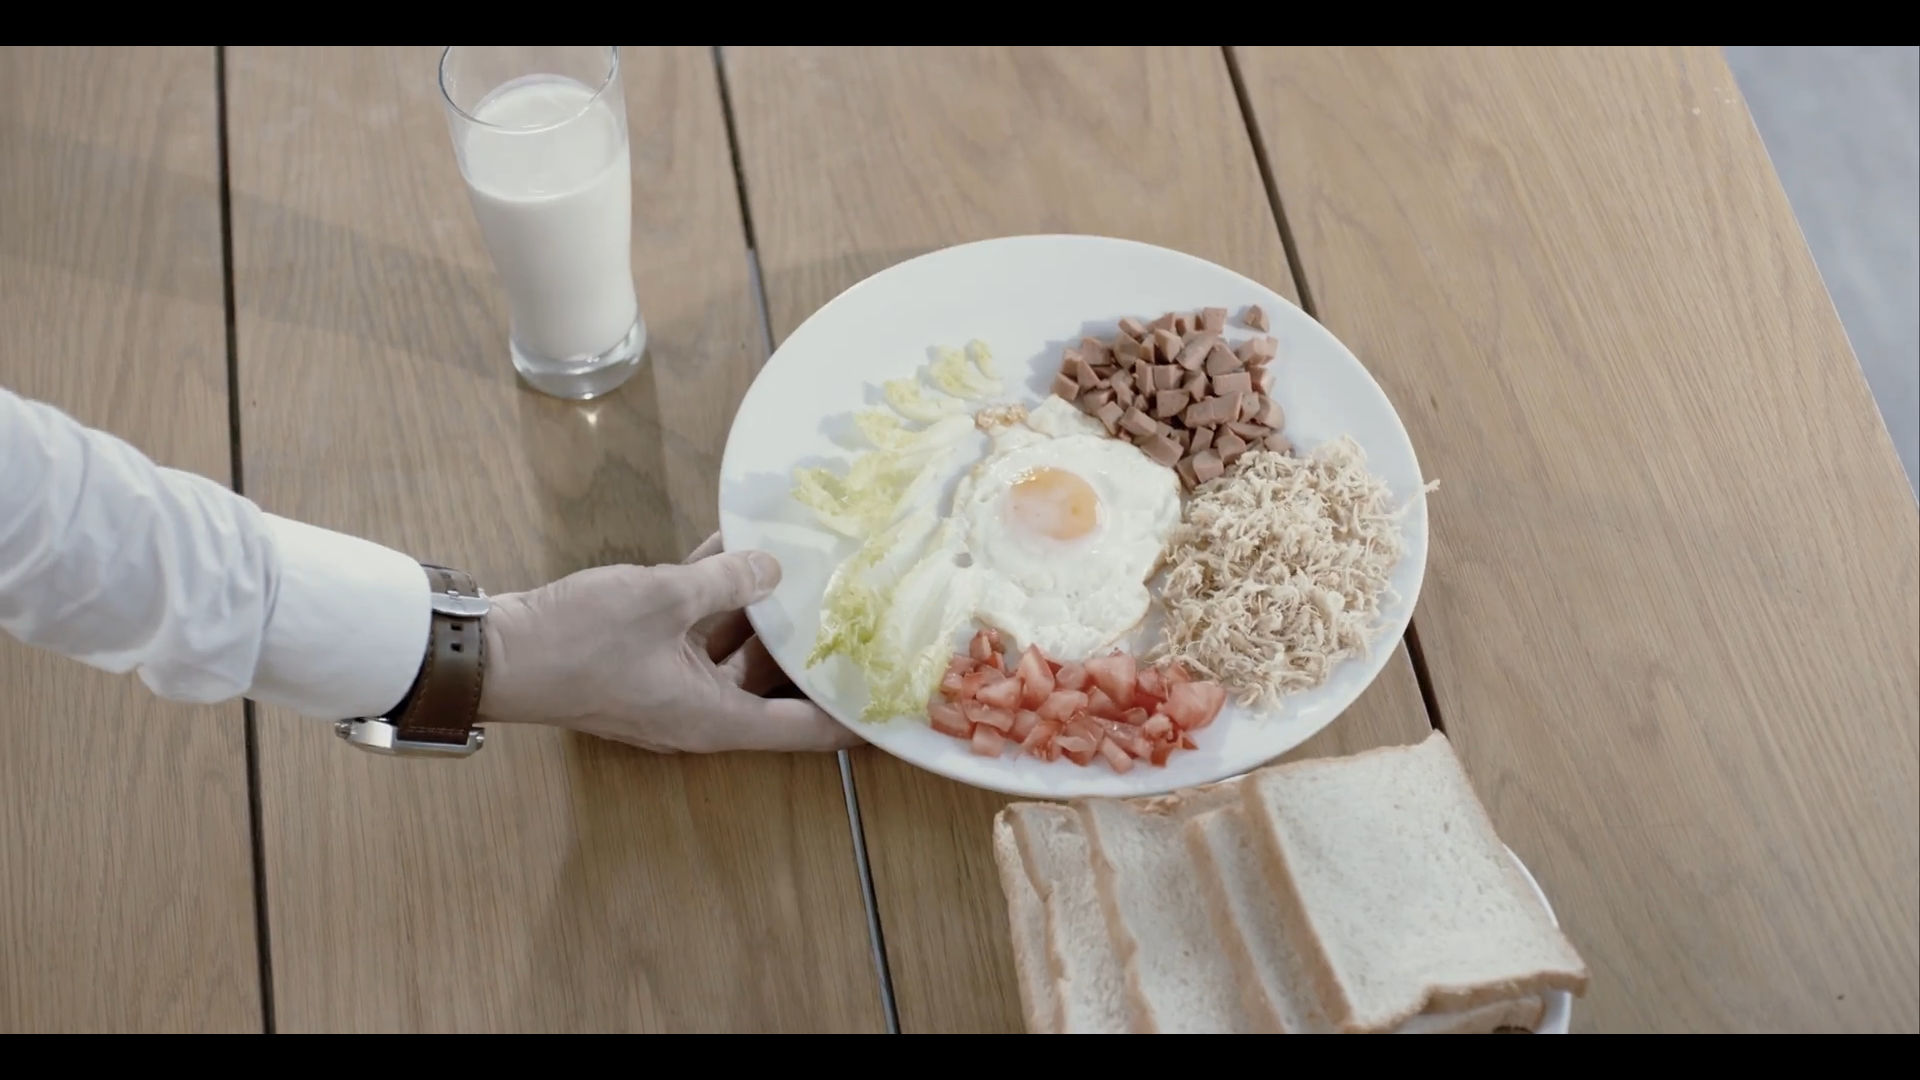 Hot dogs, shredded poultry, diced tomatoes, lettuce, a sunny-side up egg, untoasted white bread, and milk